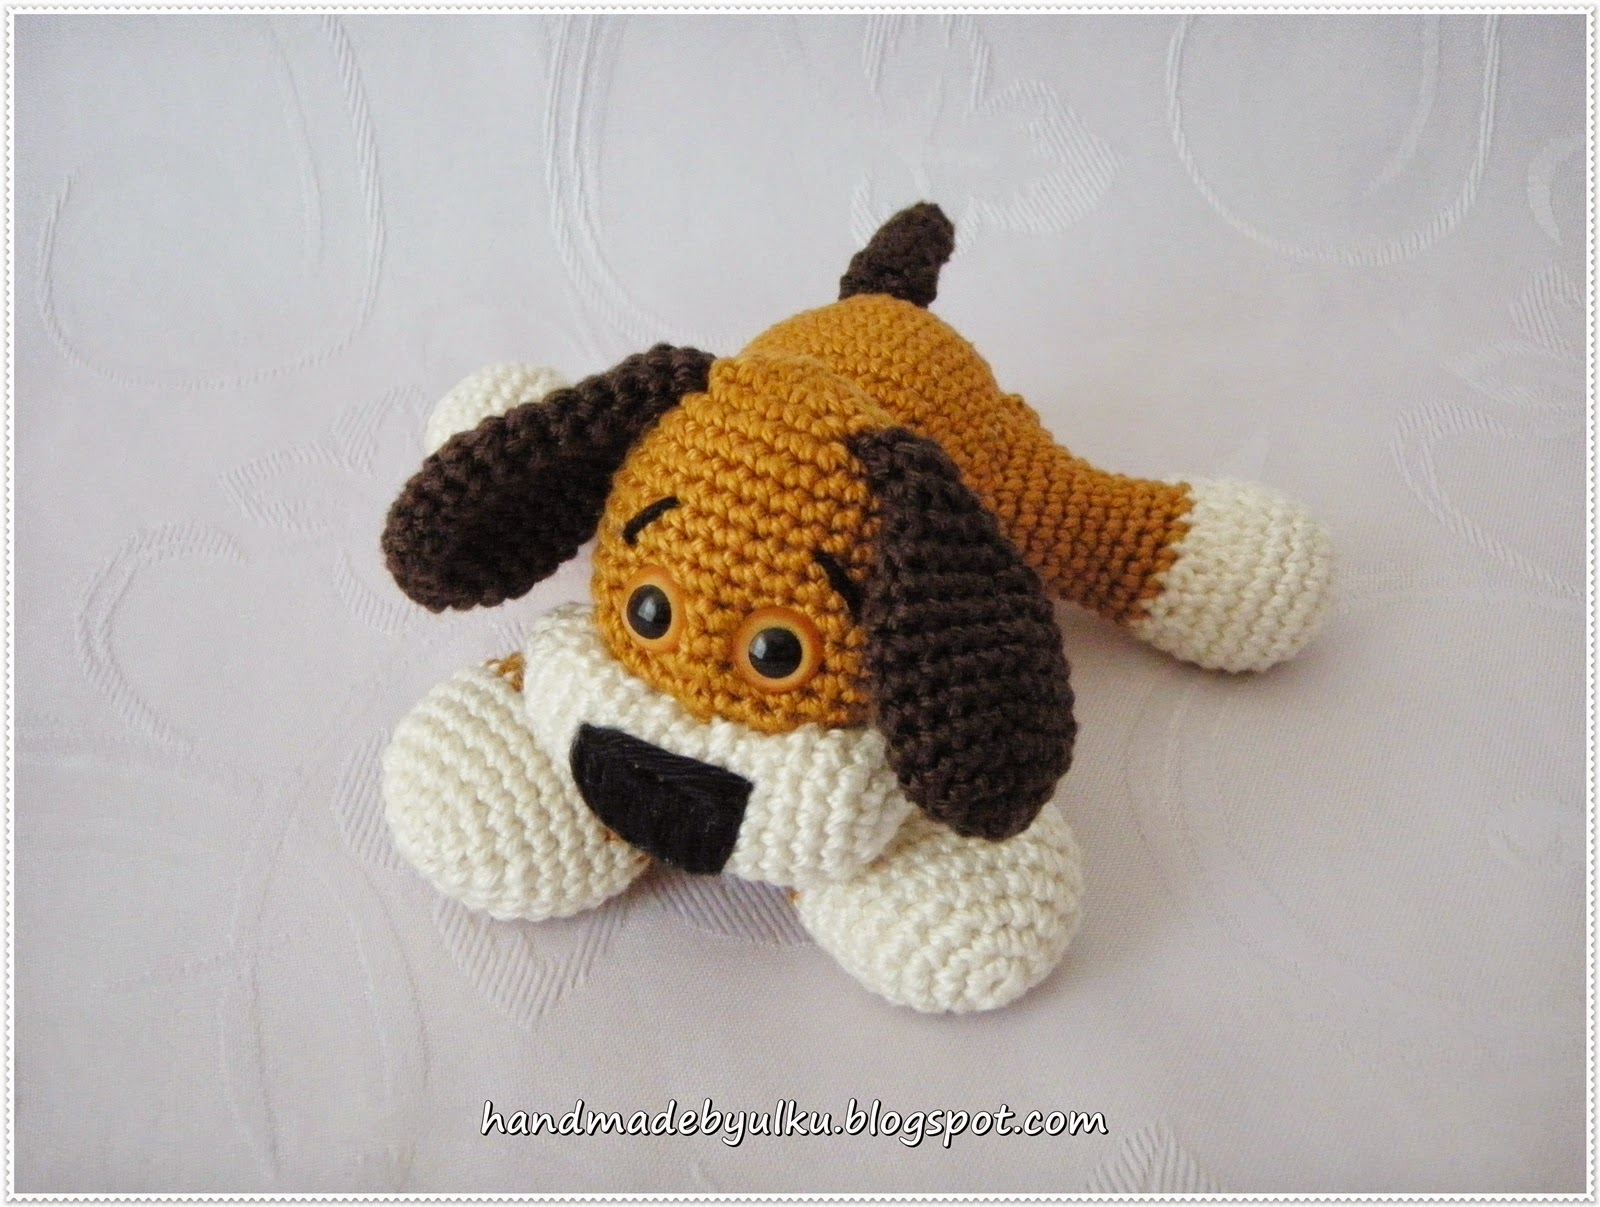 Free Pattern For Amigurumi Dog : Handmade by ?lk?: Amigurumi S??er Hund / Dog